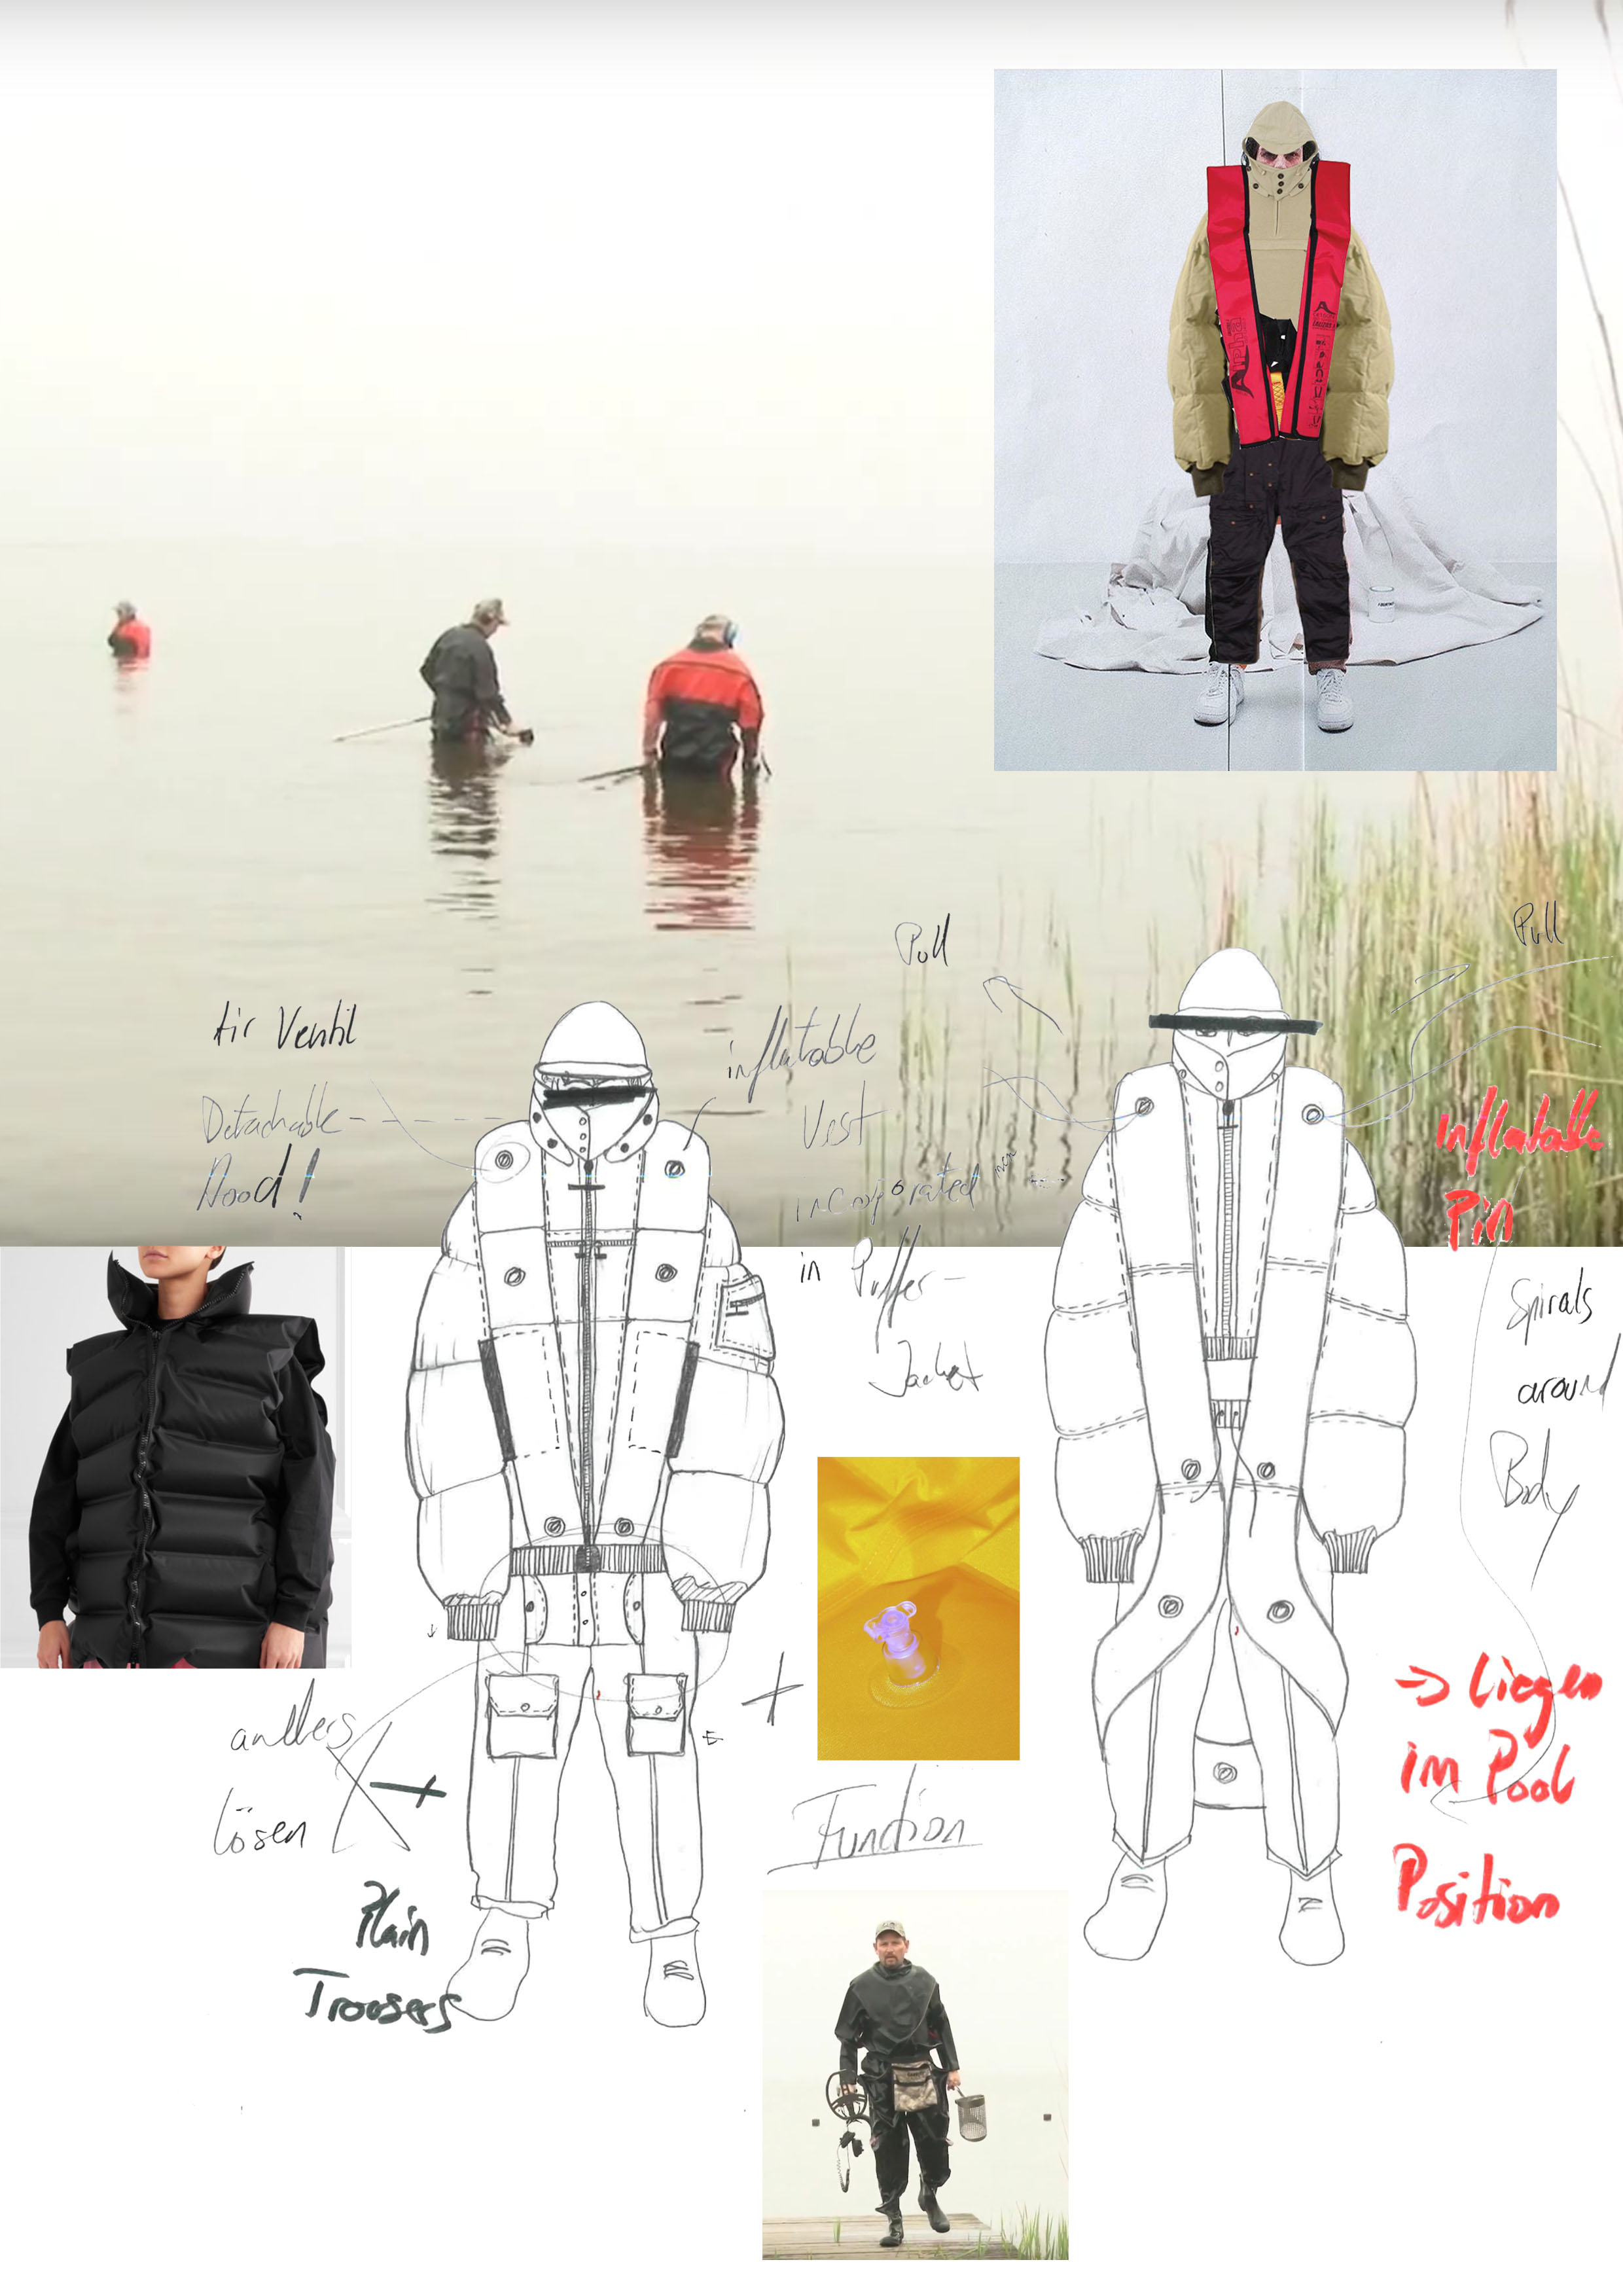 Student sketches for waterproof jacket and photo of jacket submerged in water